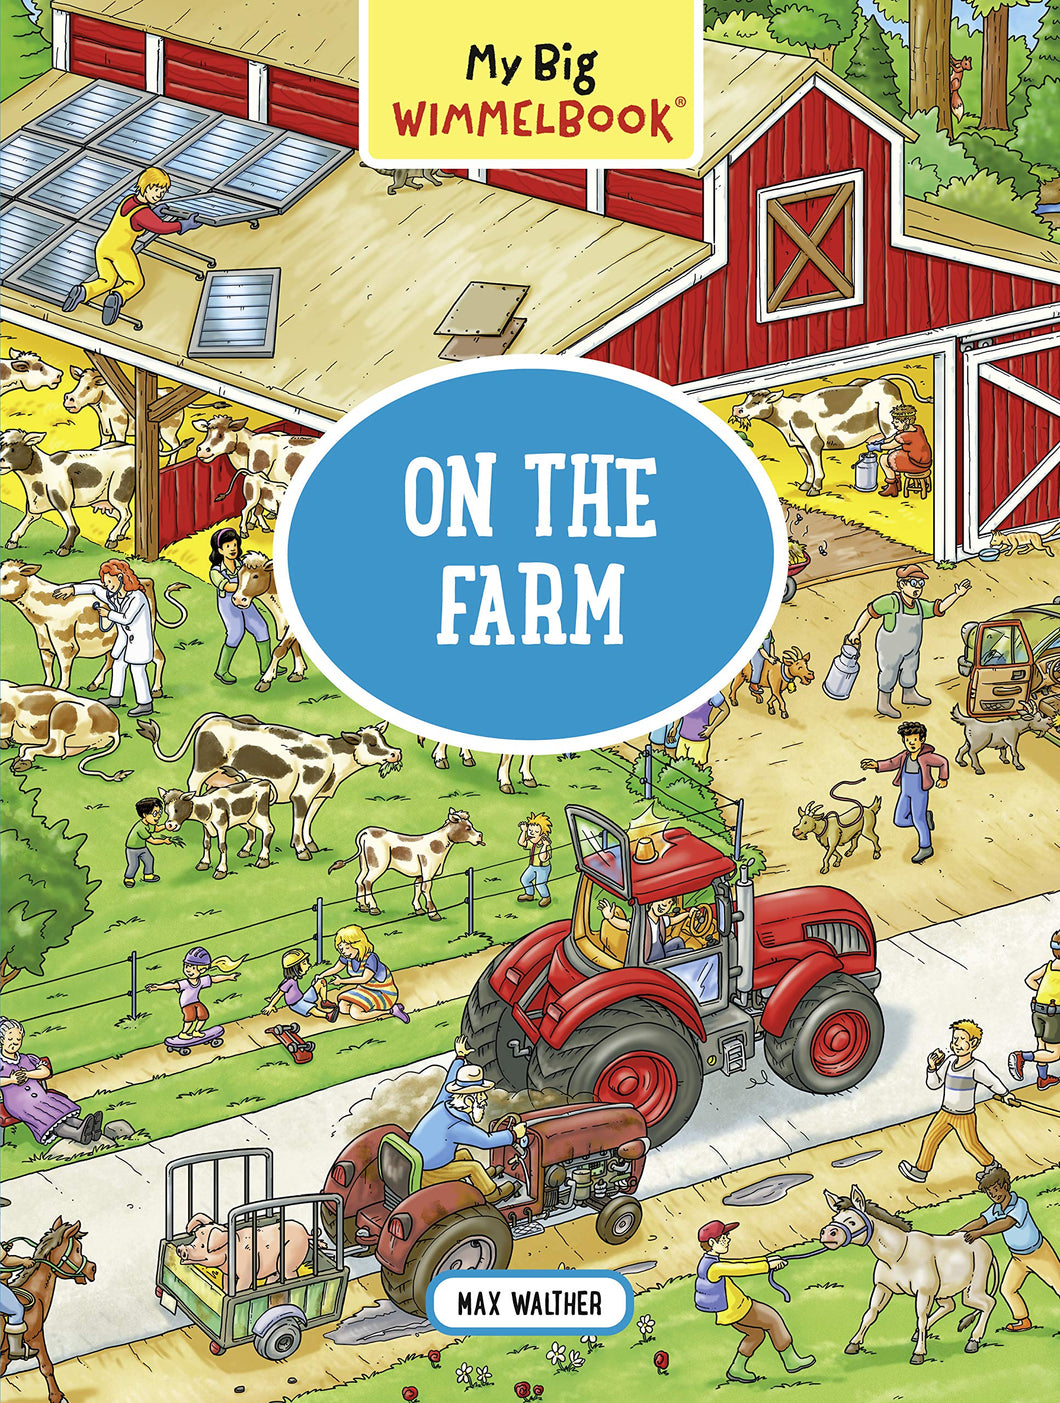 My Big Wimmelbook―On the Farm